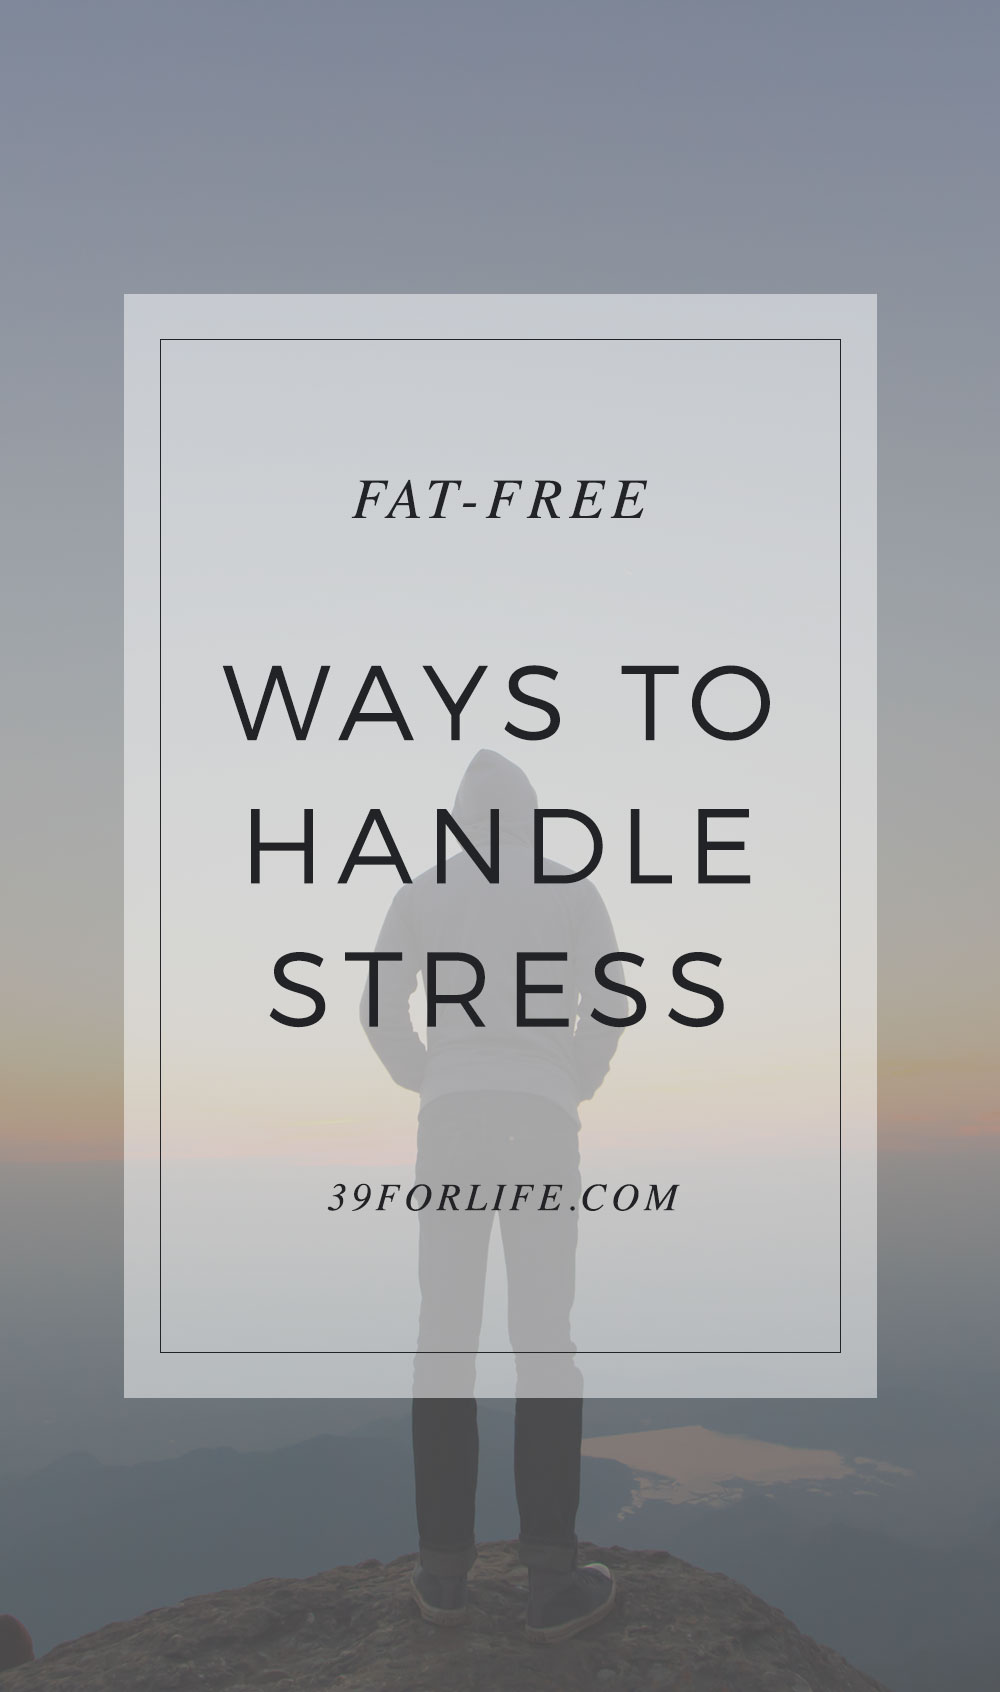 Instead of eating your way out of a stressful situation, why not use more healthy methods? Here are 6 helpful ways to reduce stress with no added sugar.